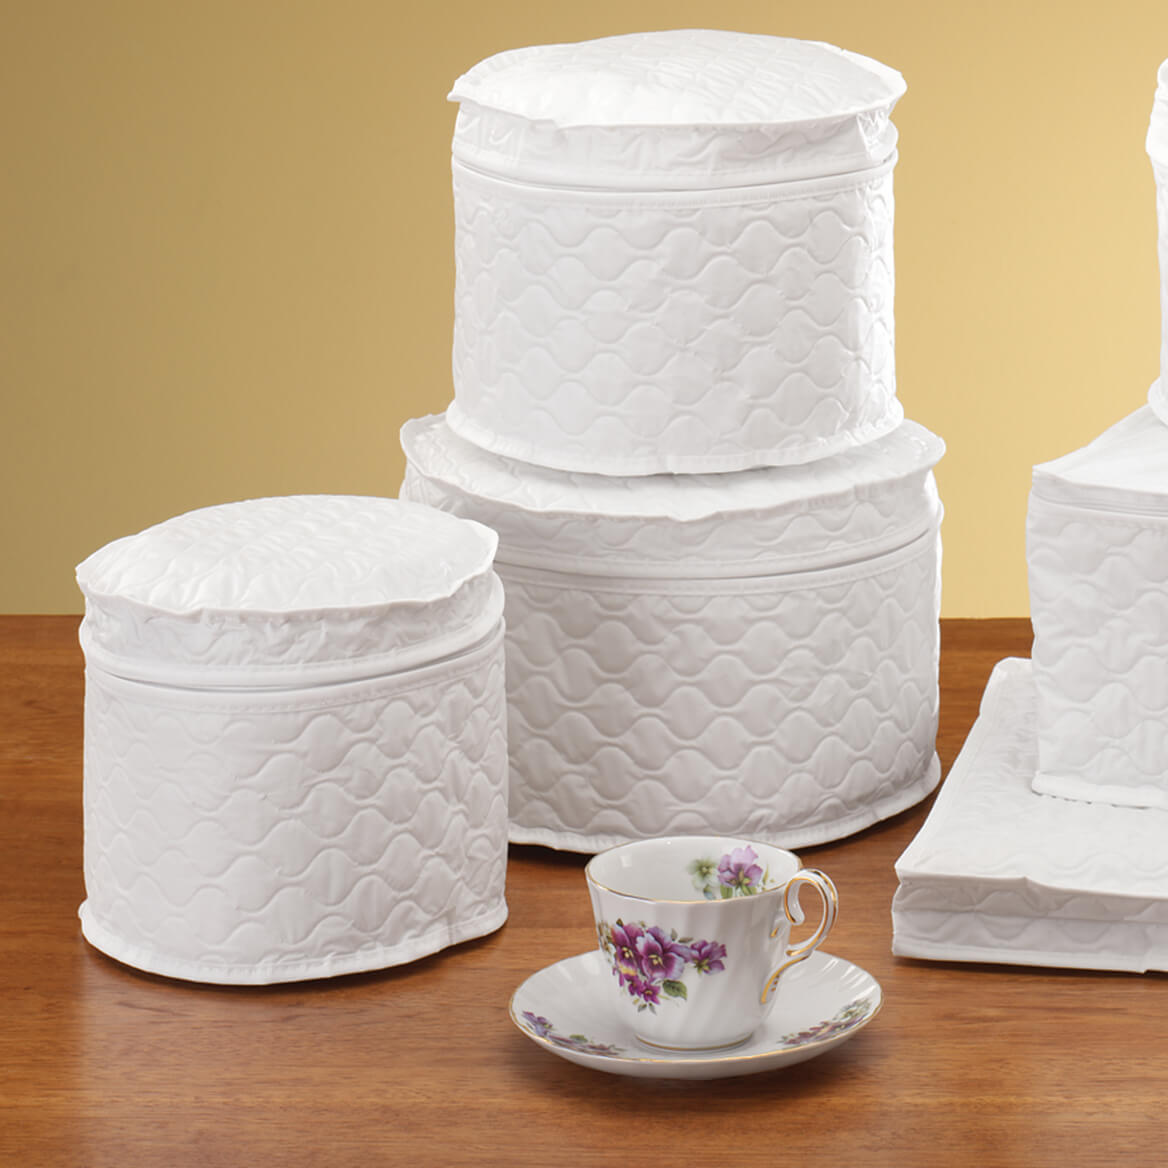 Attrayant Select Quantity   +. Saved To Wishlist Save To Wishlist Add To Cart.  Description: Protect Your China With Dinnerware Storage Cases.